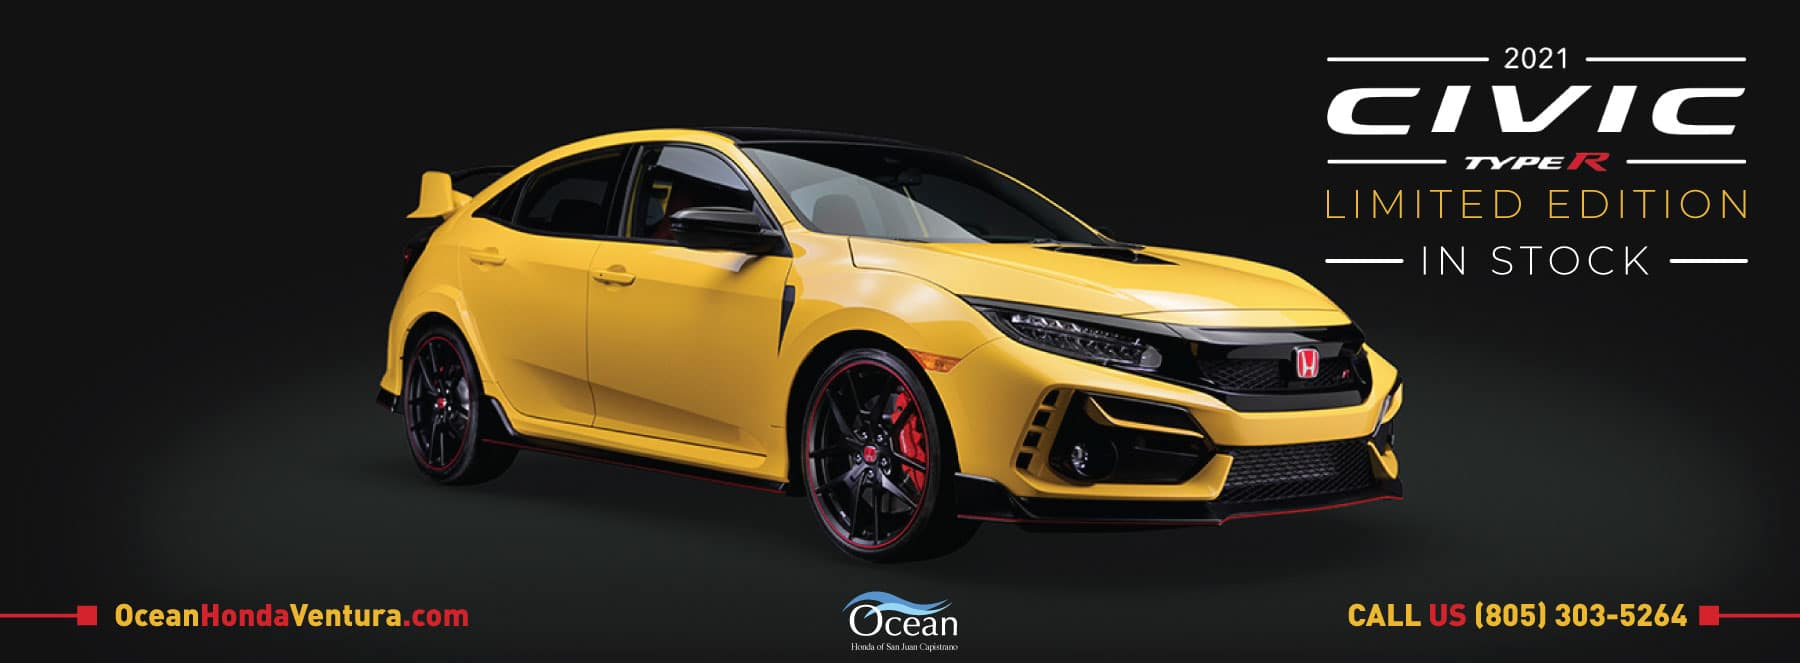 2021 Honda Civic Type R Limited Edition - In Stock